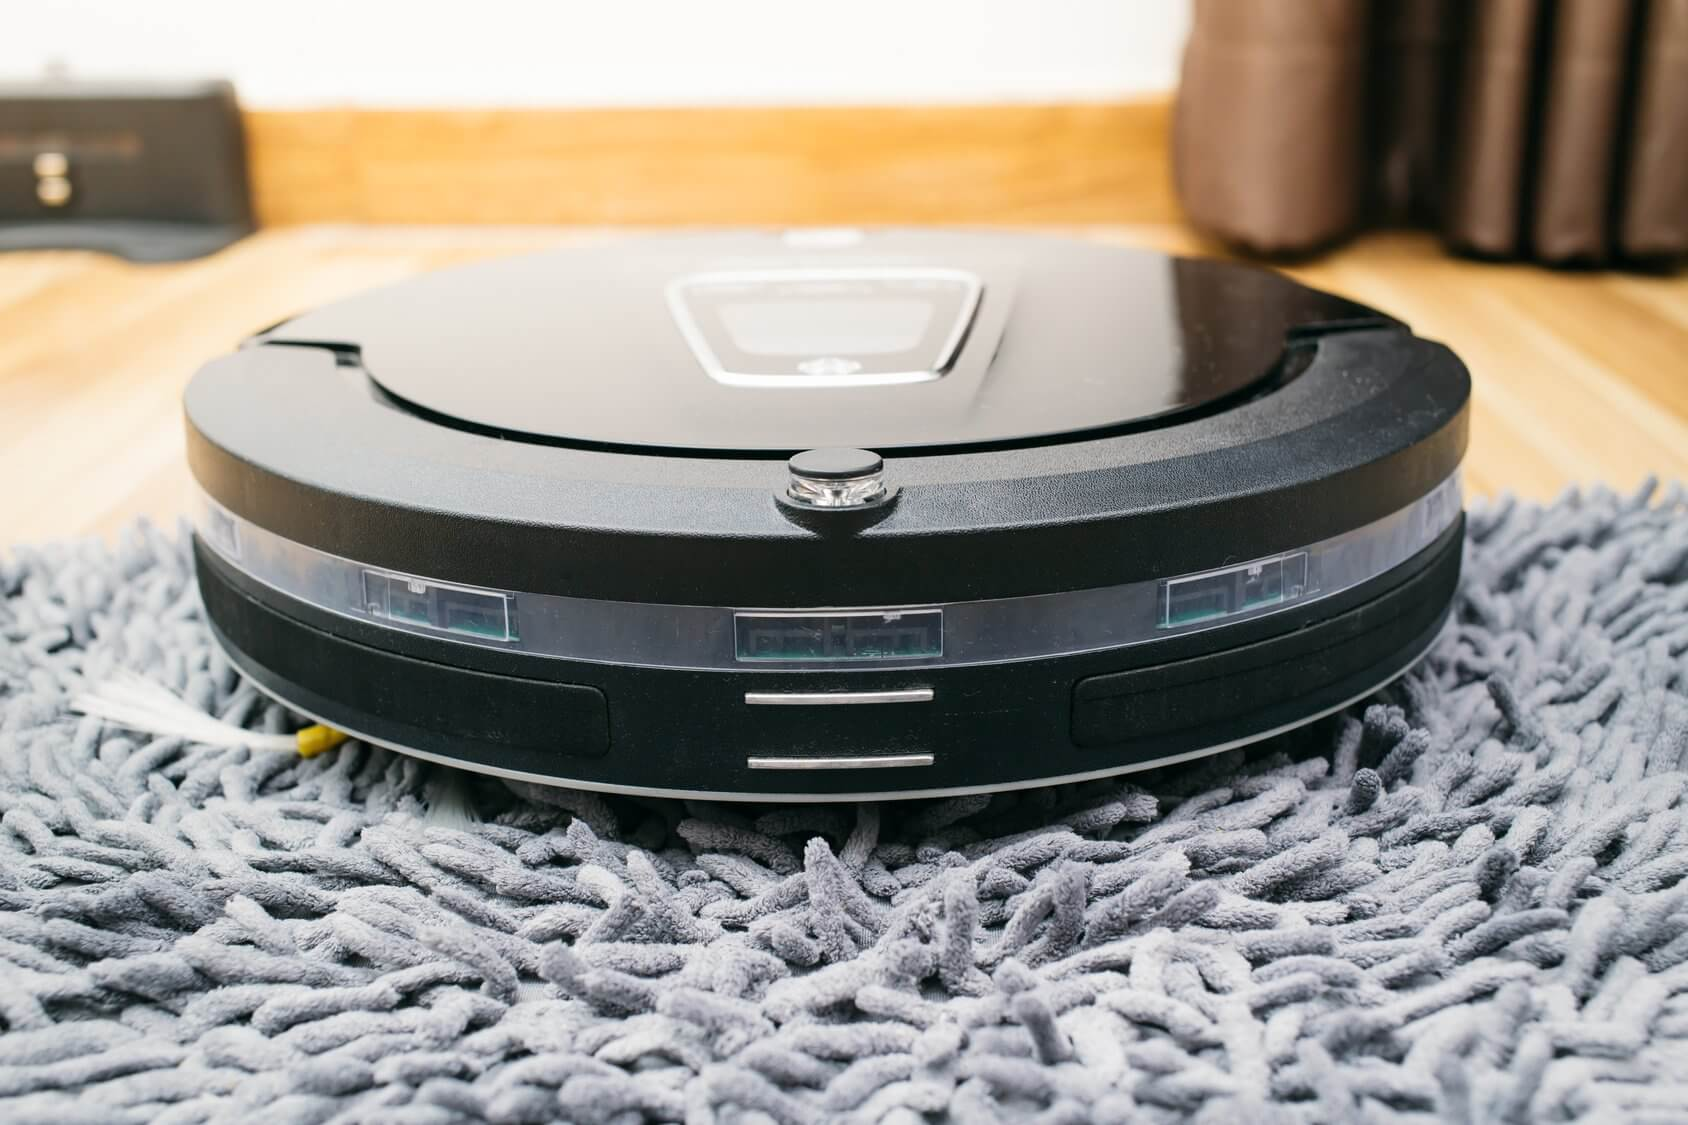 Robot vacuum cleaner on laminate wood and carpet floor, Smart robotic automate wireless cleaning technology machine in living room.